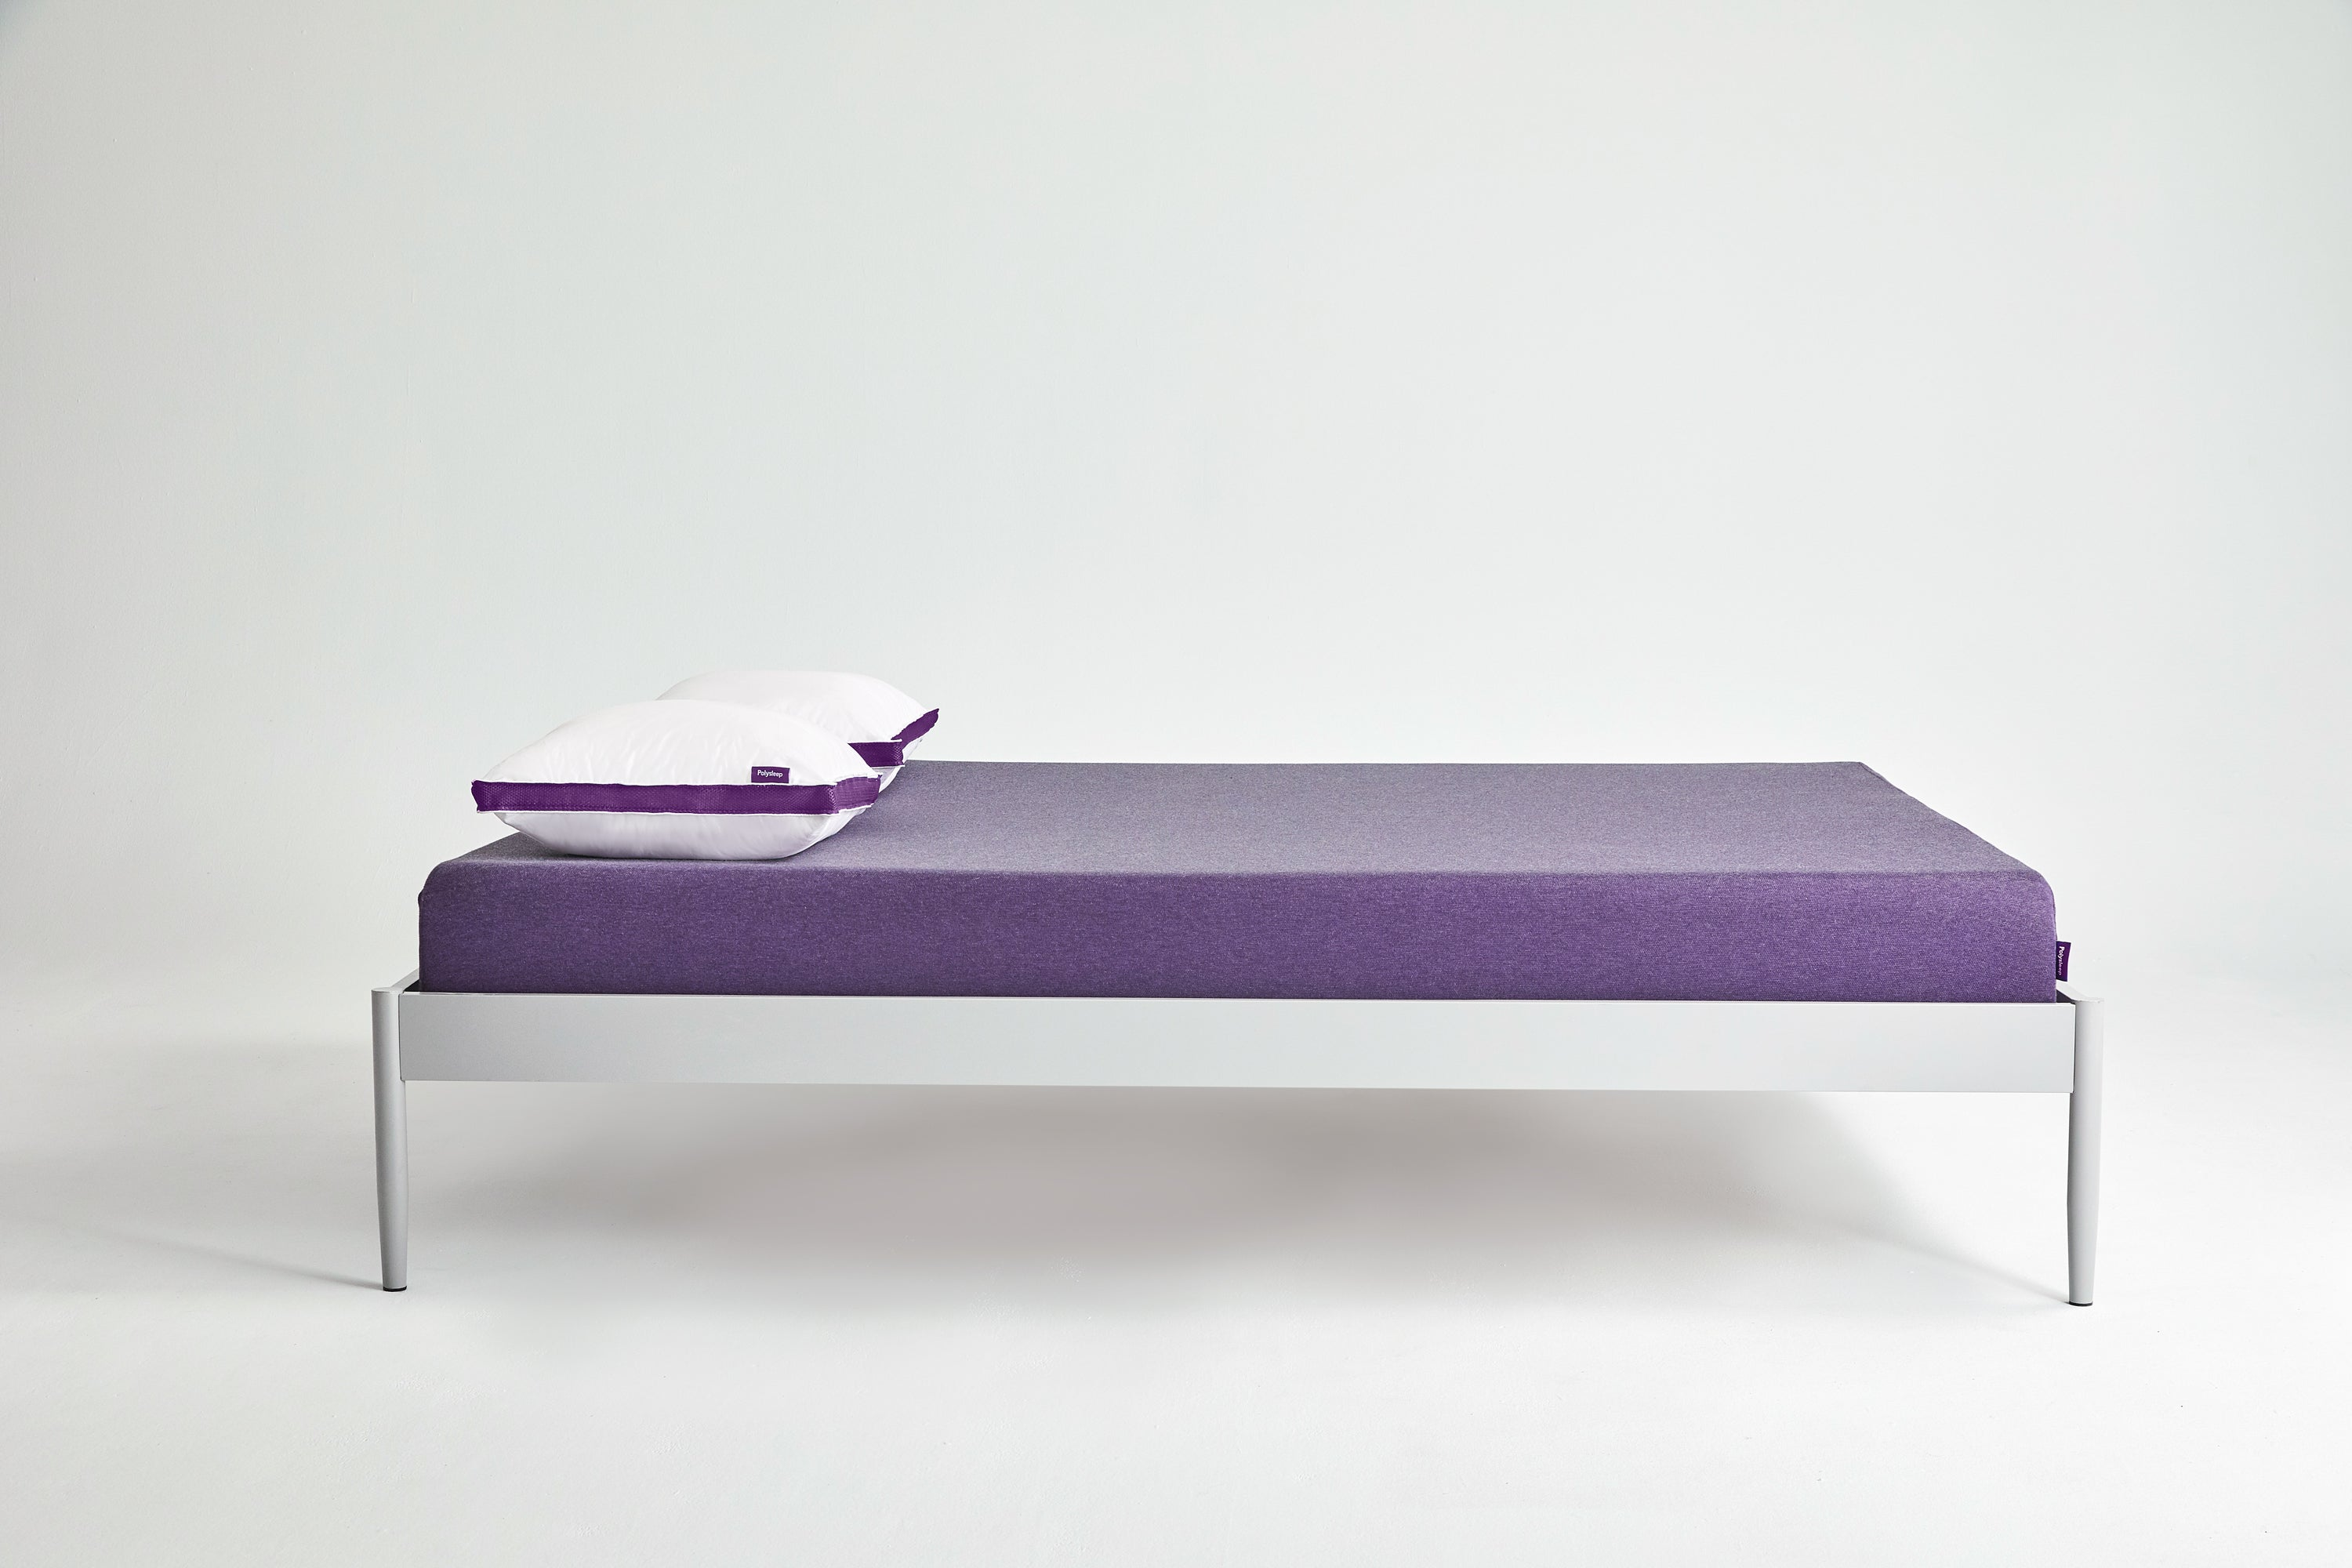 The Polysleep mattress and pillow